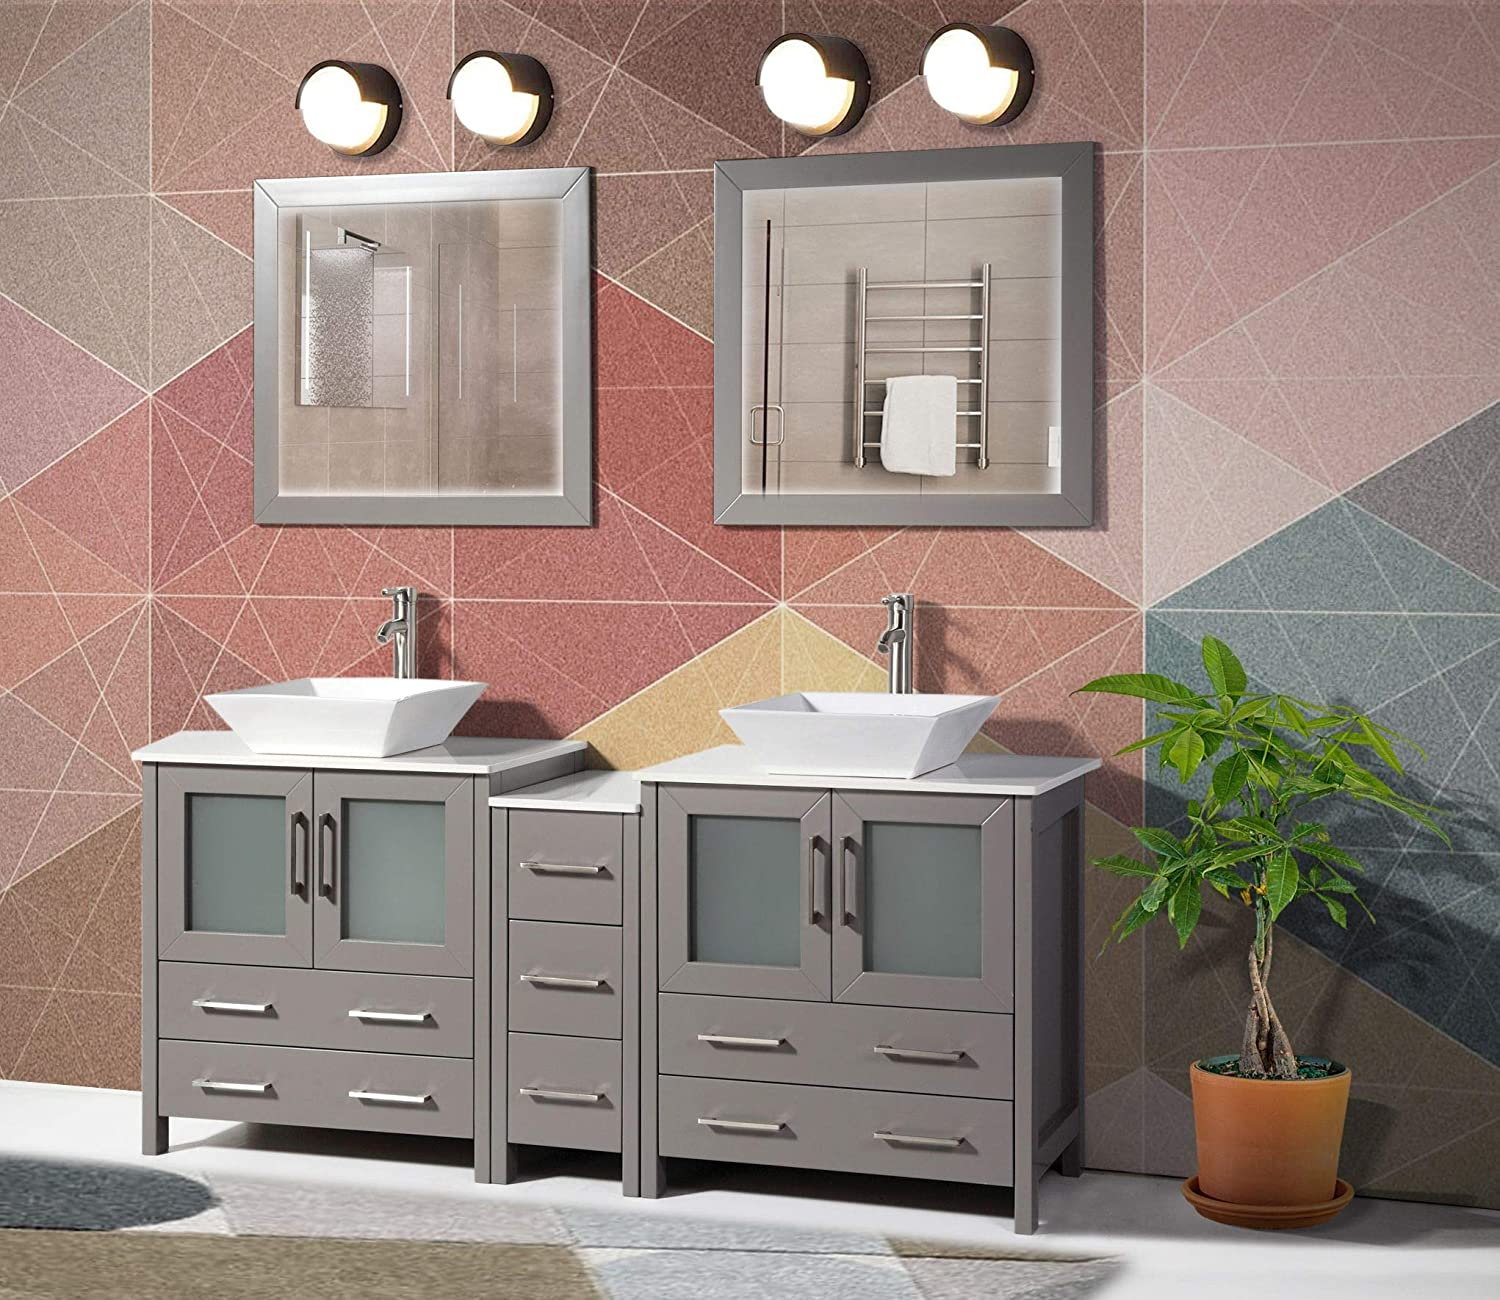 Vanity Art 72 Inches Double Sink Bathroom Vanity Combo Set 7 Drawers 2 Shelves 3 Cabinet Quartz Top Bathroom Vanity With Sink And Free Mirror Va3130 72g Walmart Com Walmart Com